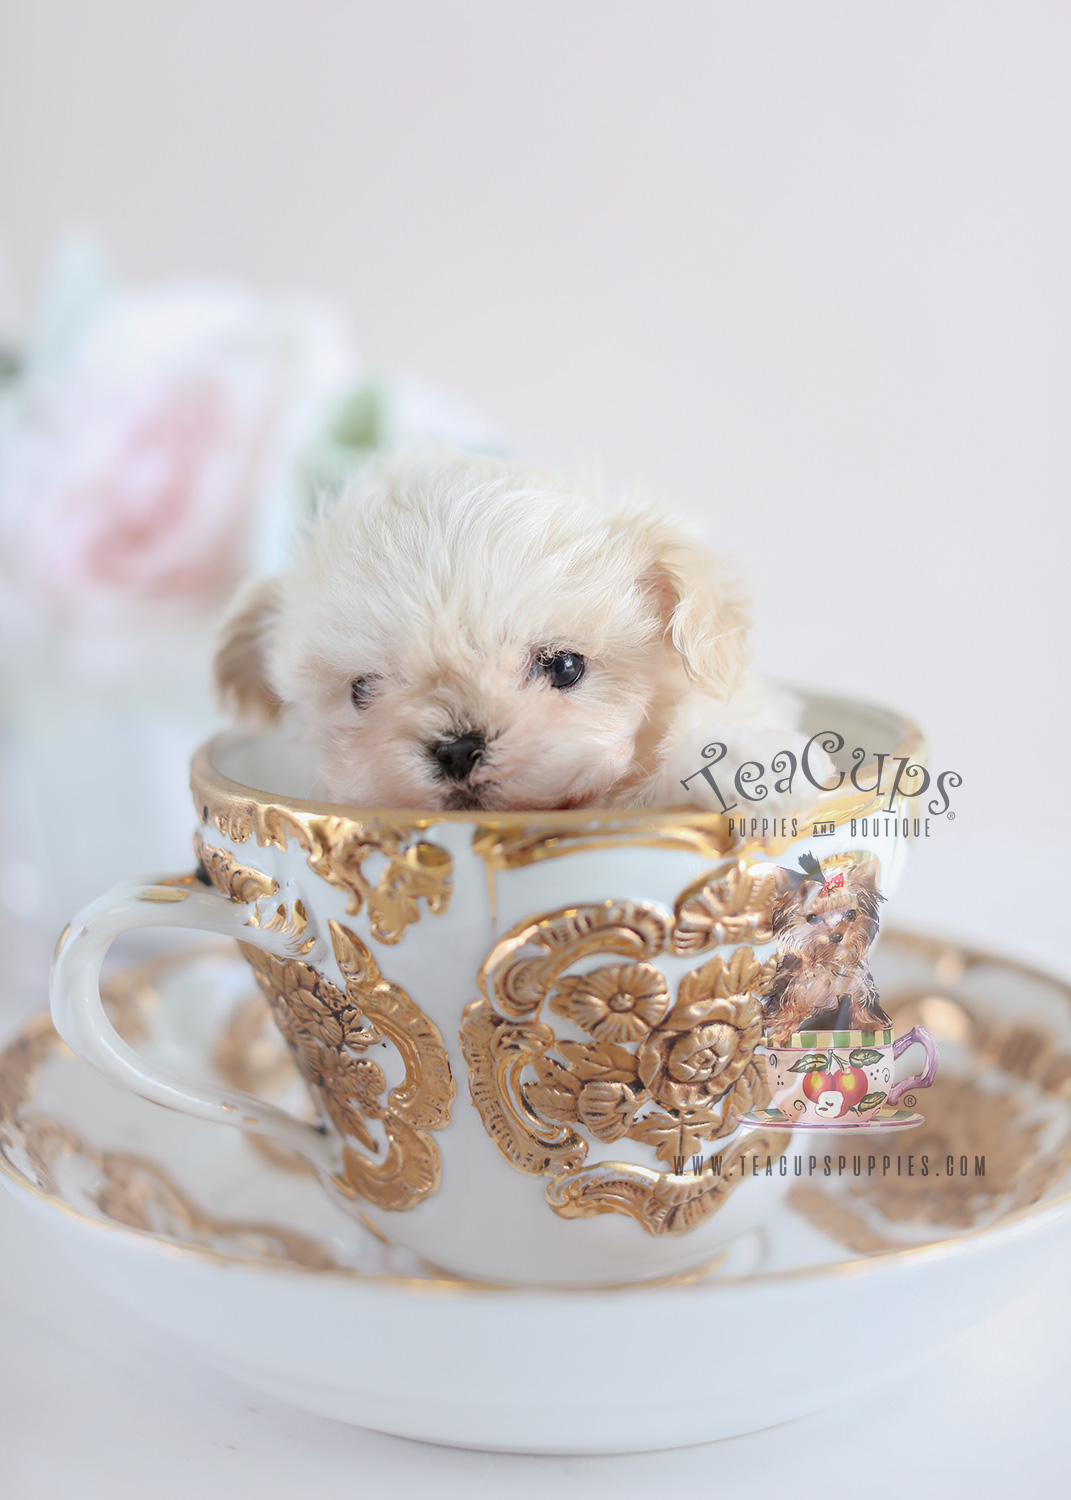 Black Maltese Poodle Designer Breed Puppies | Teacups